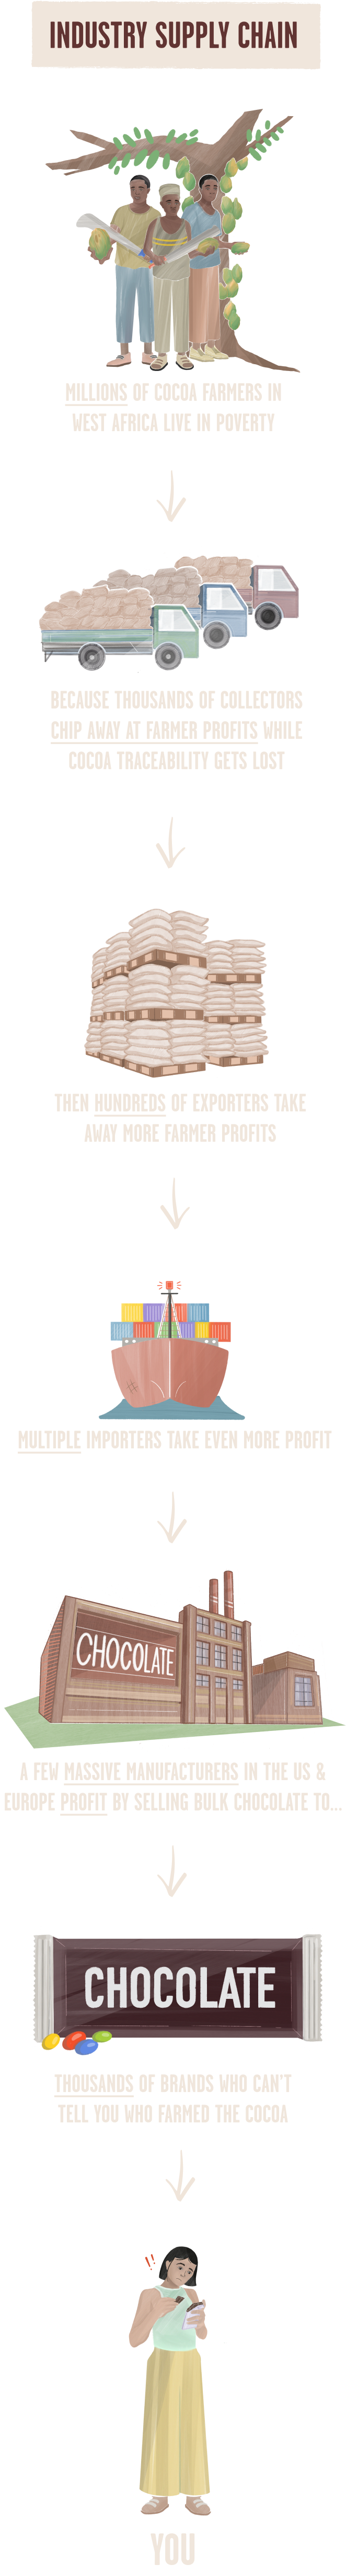 Illustrated infographic connecting the following phrases and imagery:  Farmers standing under a cocoa tree: Millions of COCOA farmers IN WEST AFRICA LIVE IN POVERTY  Trucks with palettes of cocoa pods: BECAUSE THOUSANDS OF COLLECTORS CHIP AWAY AT FARMER PROFITS WHILE COCOA TRACEABILITY GETS LOST  Palettes of cocoa pods: THEN HUNDREDS OF EXPORTERS TAKE AWAY MORE FARMER PROFITS  Container ship carrying cargo: MULTIPLE importers TAKE EVEN MORE PROFIT  Chocolate factory: SEVERAL MANUFACTURERS IN THE US & EUROPE MAKE LARGE PROFITS SELLING BULK CHOCOLATE TO…  Chocolate products: THOUSANDS OF BRANDS WHO CAN'T TELL YOU WHO FARMED THE COCOA  Dissatisfied consumer: YOU